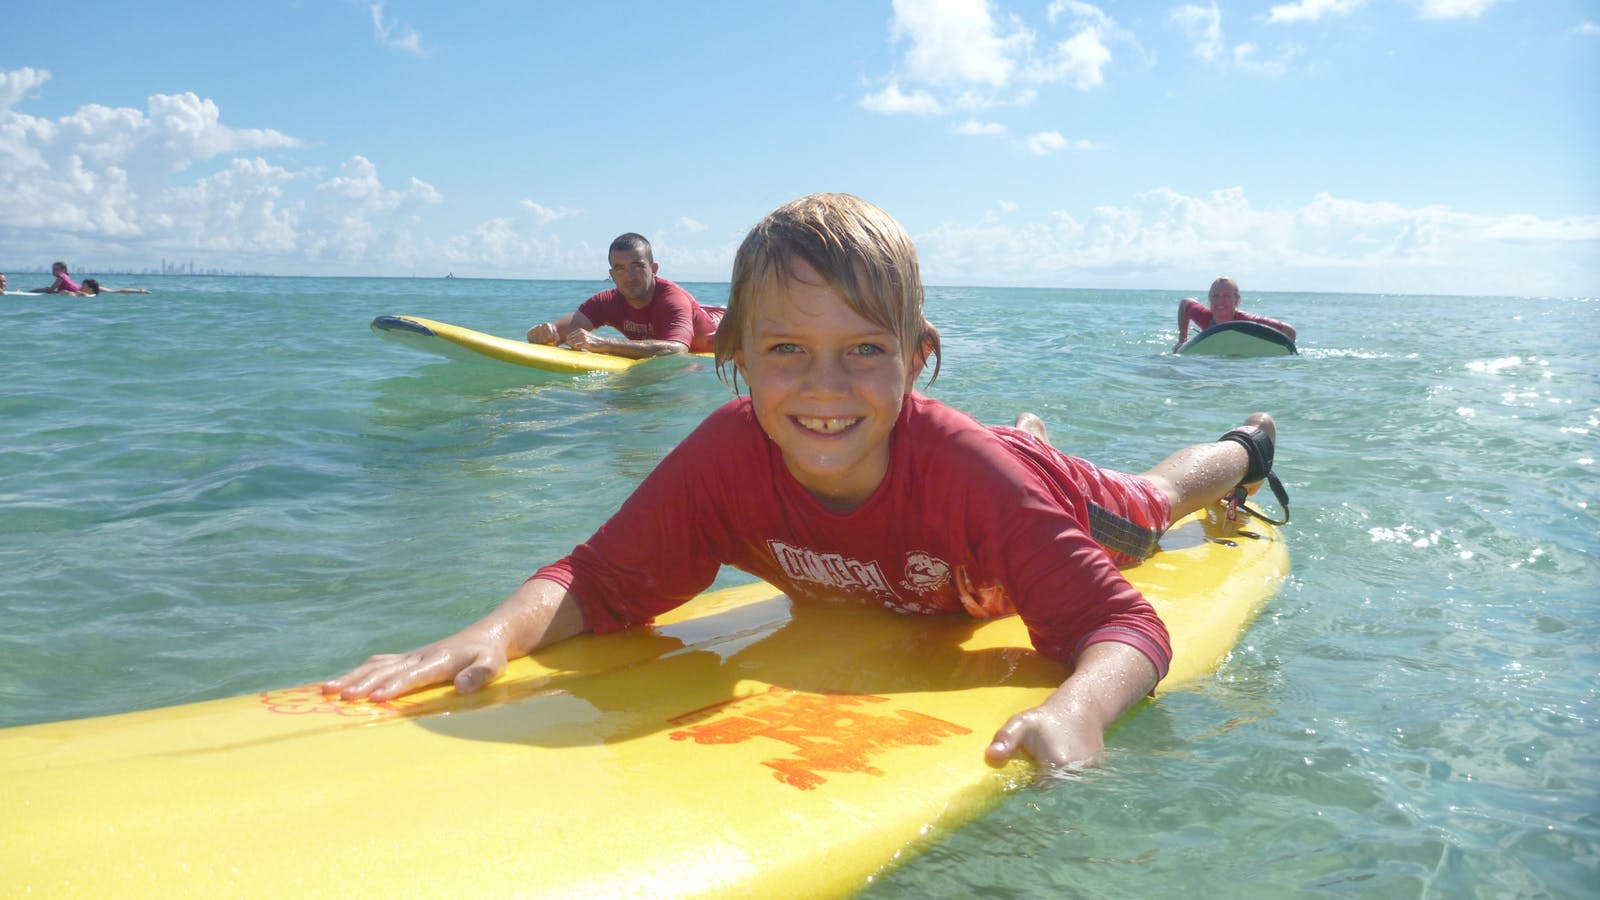 Their surf school and location are perfect for all ages and abilities